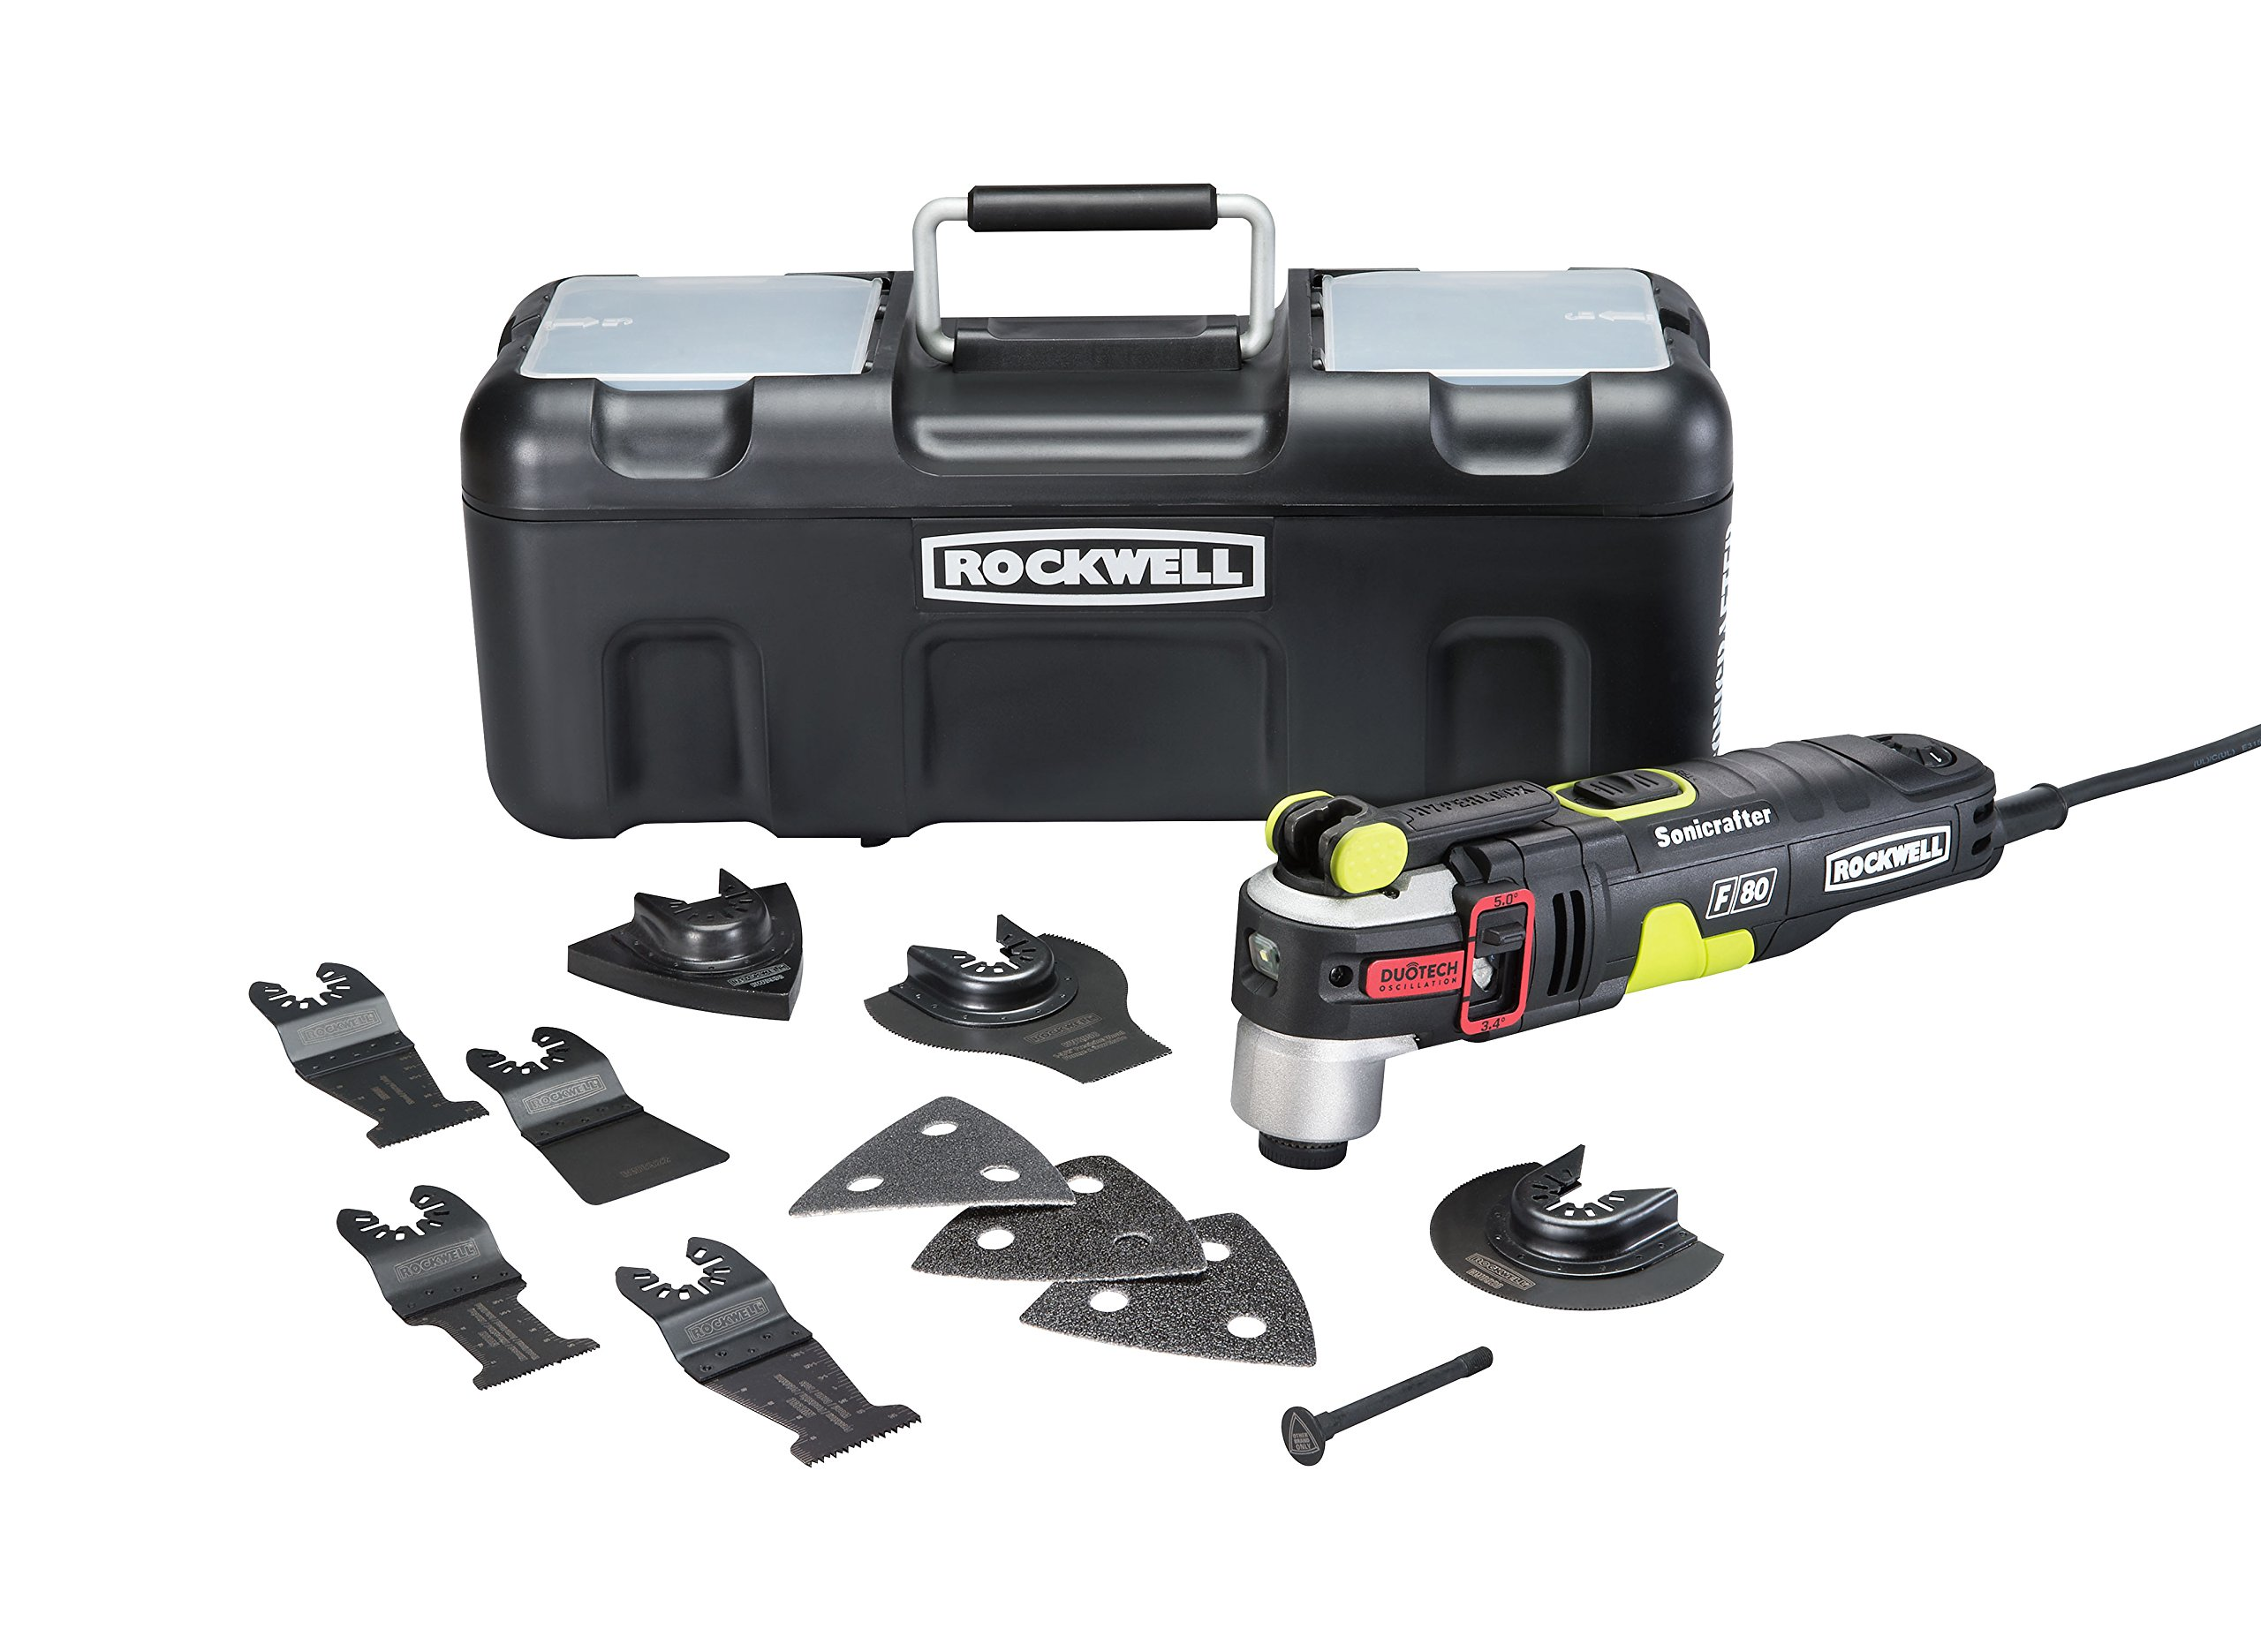 Rockwell RK5151K 4.2 Amp Sonicrafter F80 Oscillating Multi-Tool with Duotech Oscillation Angle Technology. 12 Piece Kit includes 10 Accessories, Carrying Bag, and Oscillating Tool by Rockwell